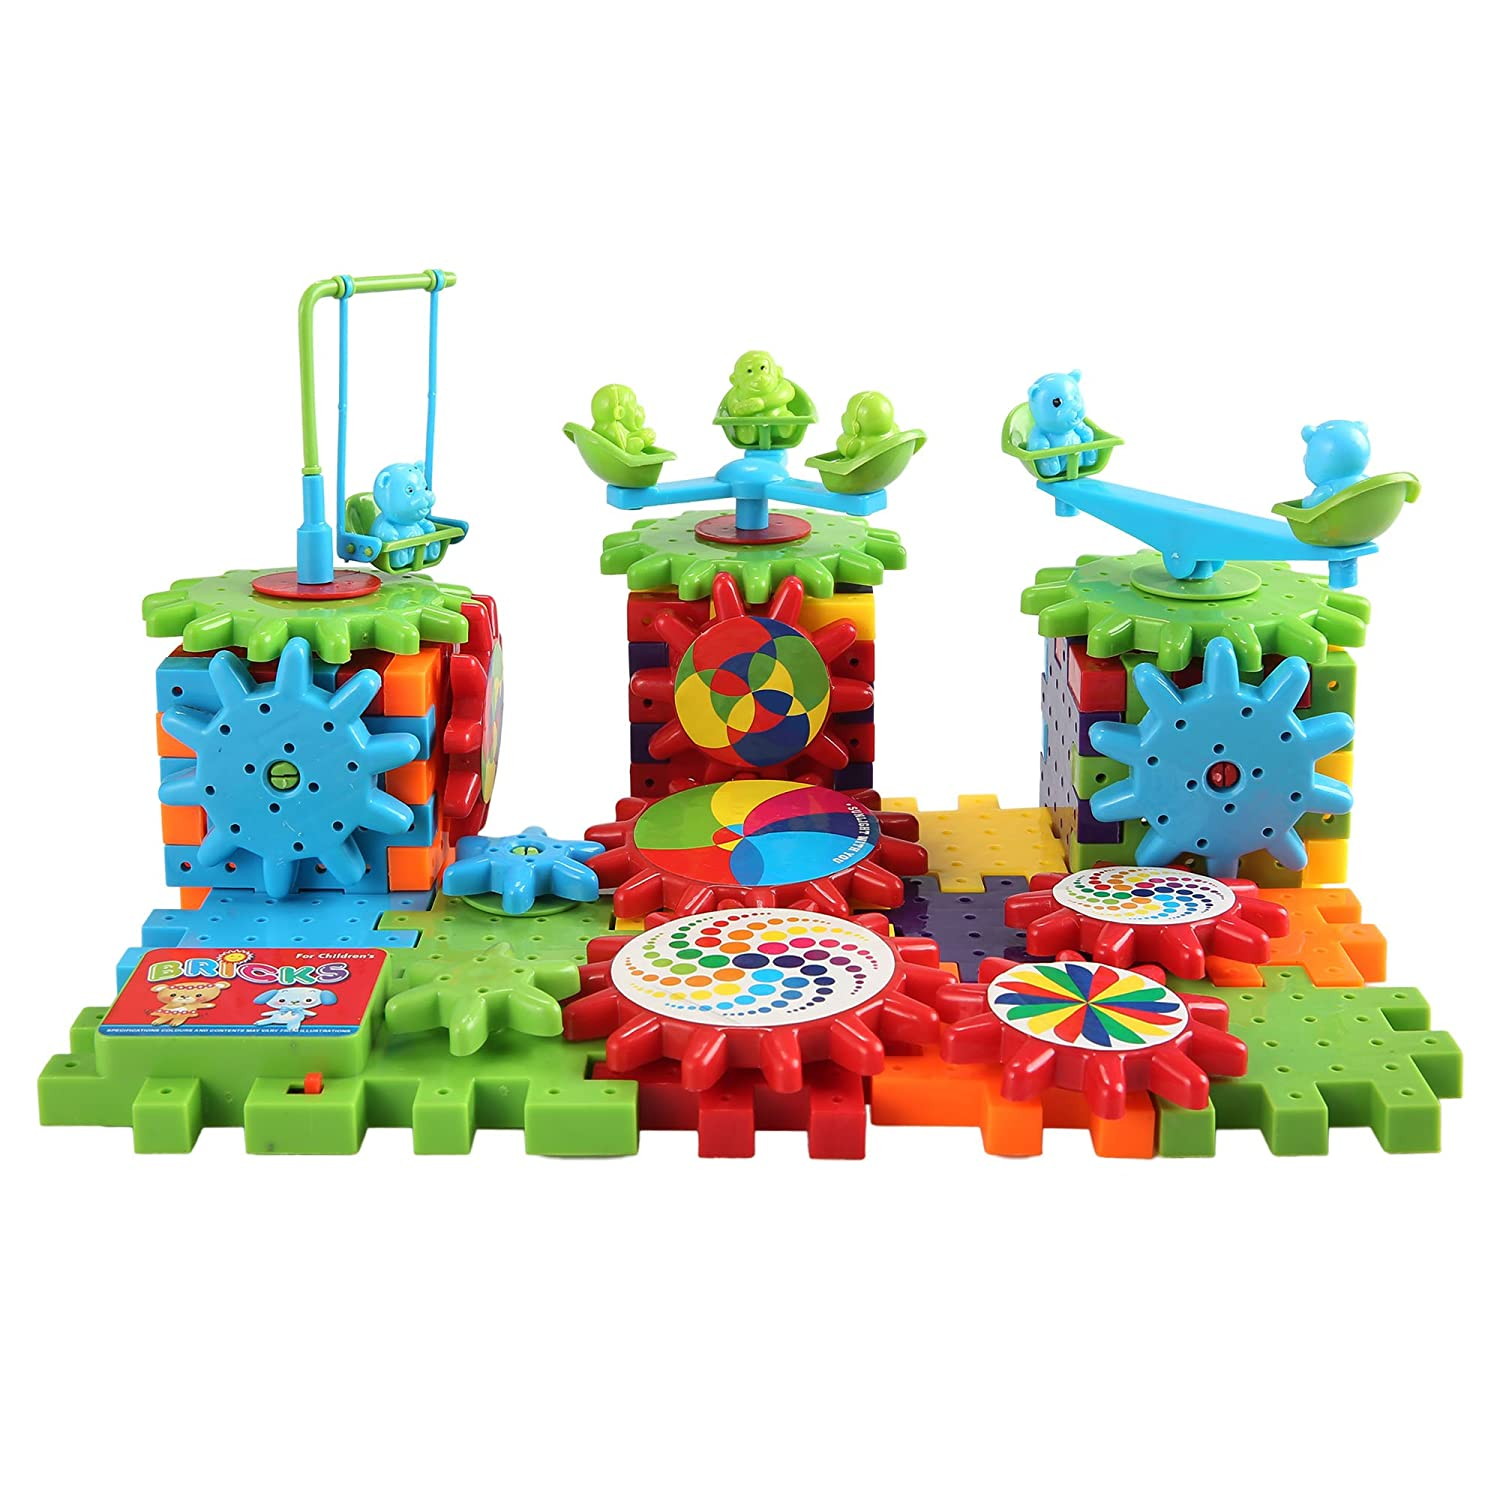 Amazon Gracelove educational Toys Building Block Bricks